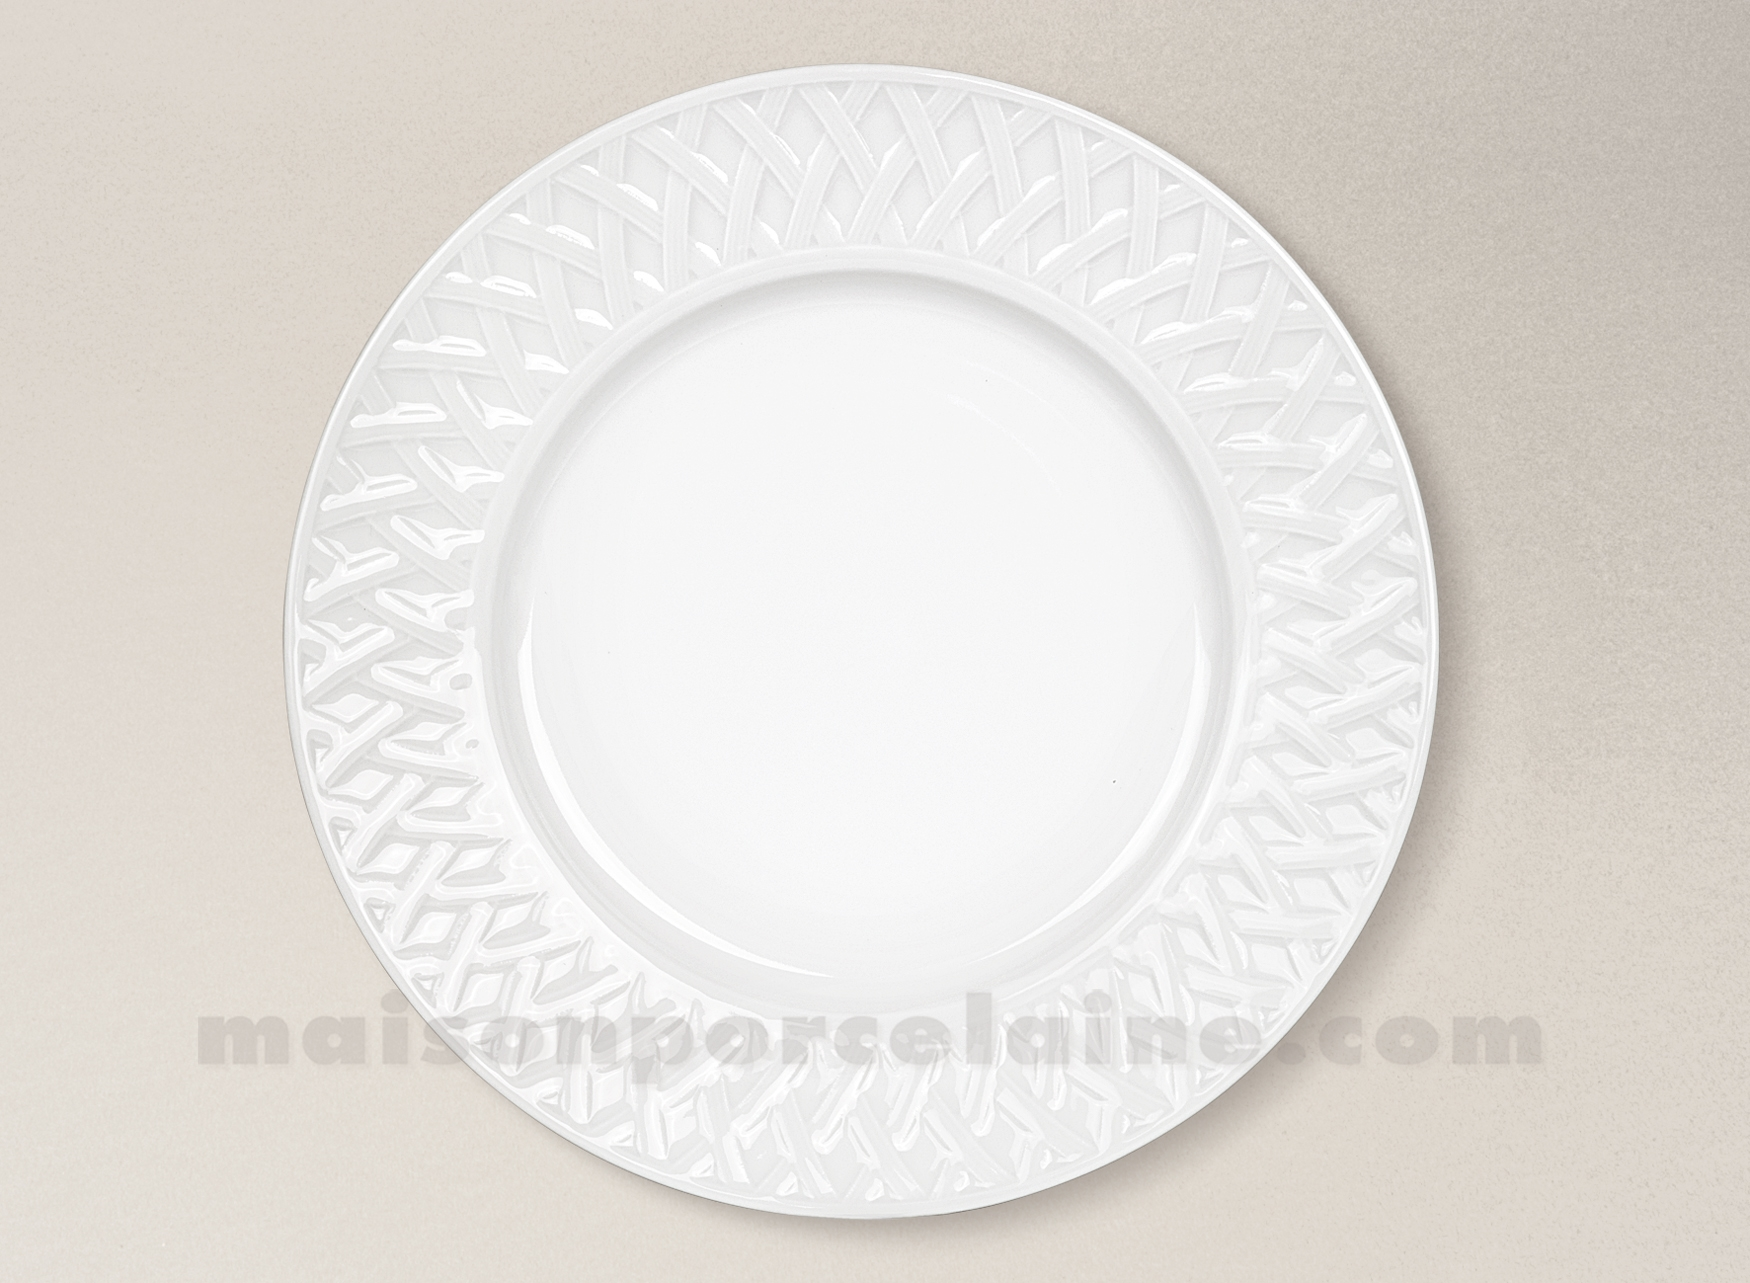 assiette plate limoges porcelaine blanche louisiane d27 maison de la porcelaine. Black Bedroom Furniture Sets. Home Design Ideas